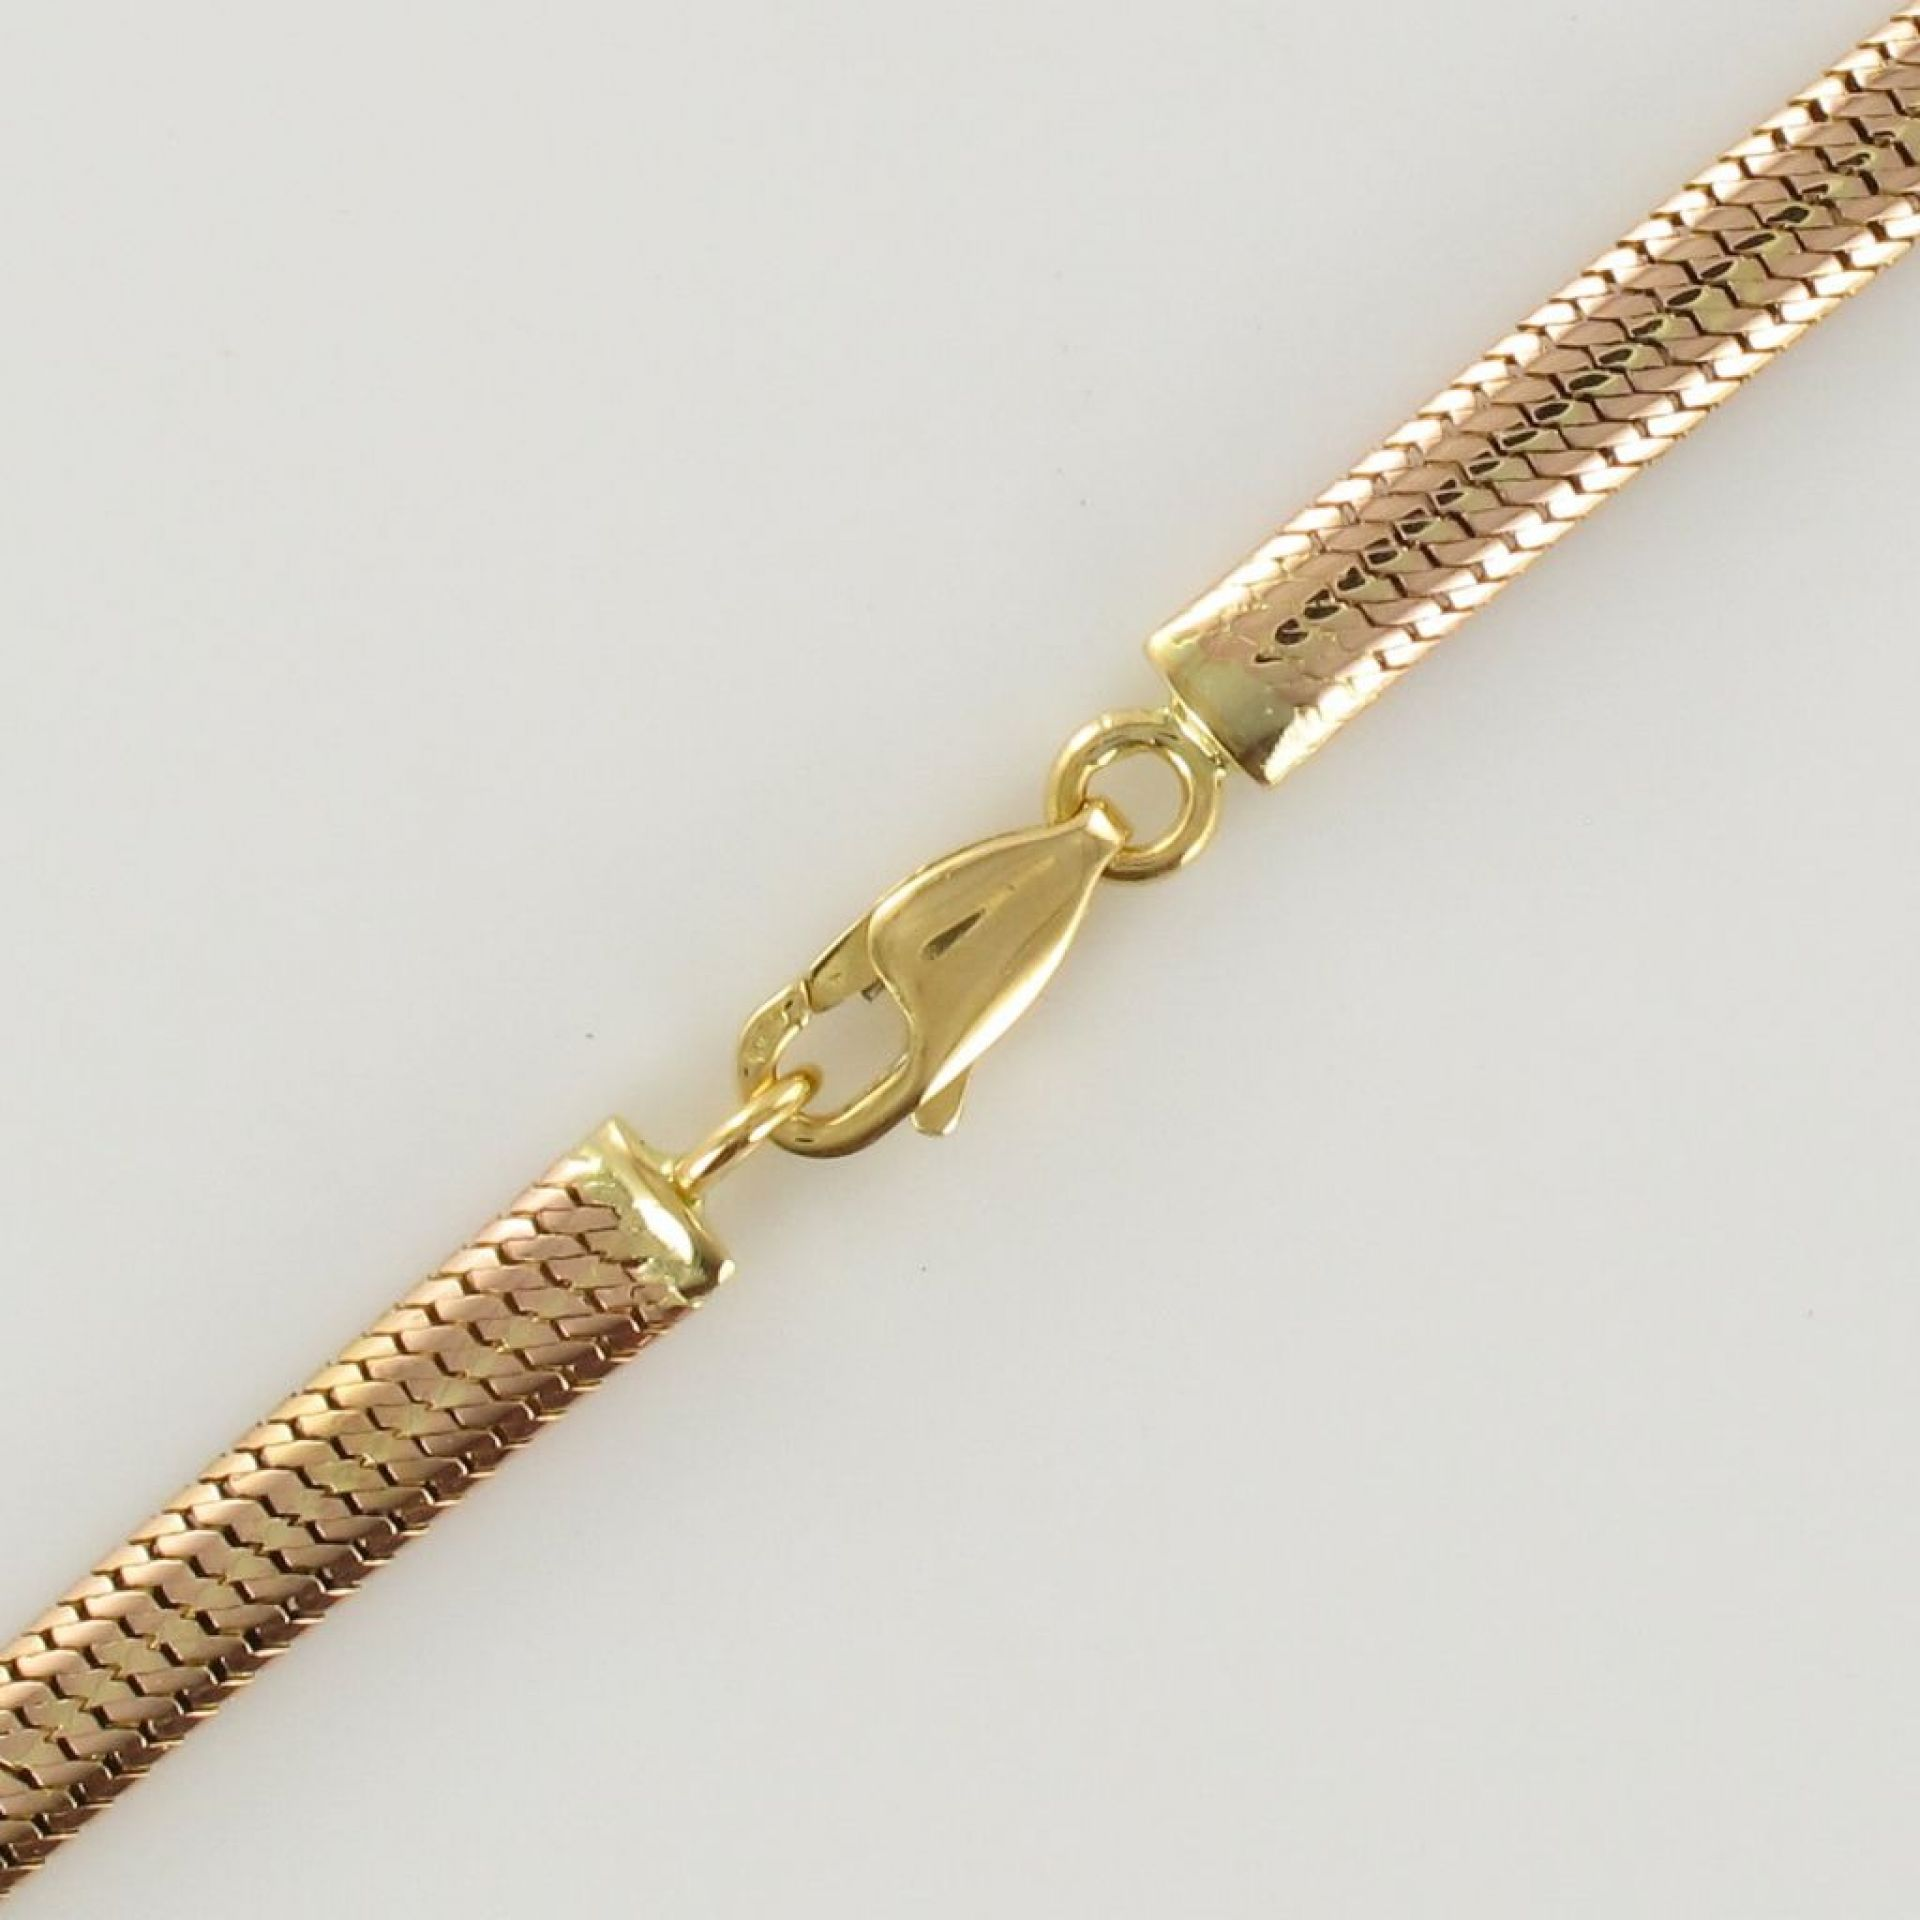 Pink gold snake link necklace